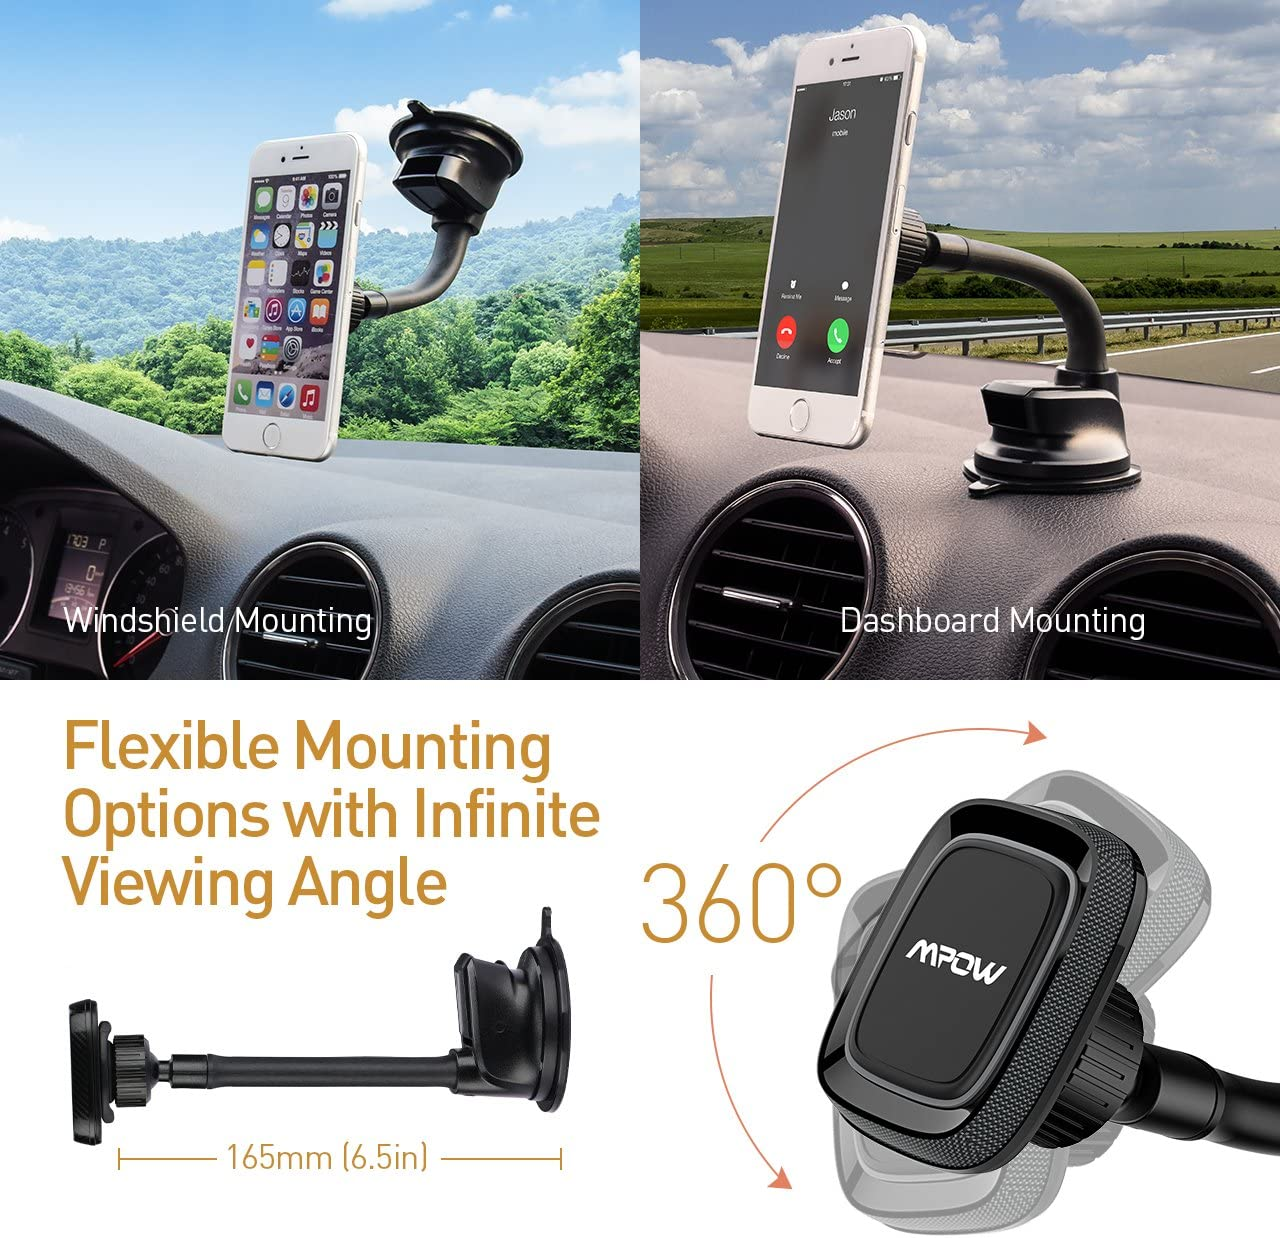 Mpow Grip Flexible Universal Windshield 22 Cm Long Arm Extra Dash Base And Dual Suction Cup Car Mount For Smart Phones Gps Devices Etc Black Navigation Car Hifi